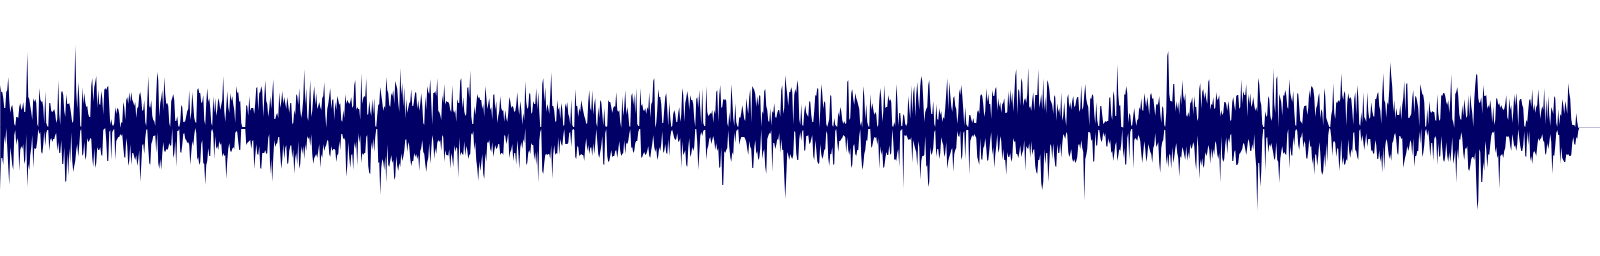 waveform of track #95643